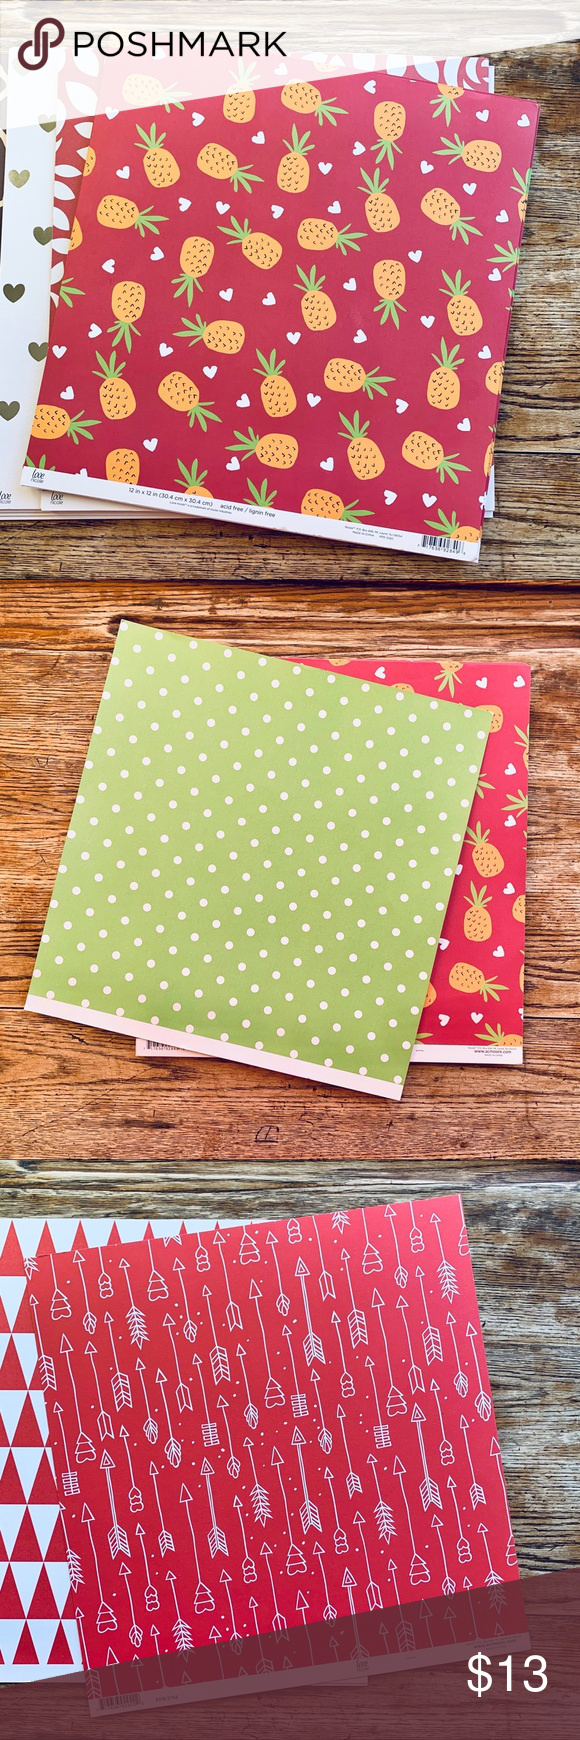 47 Loose Stock Paper 12 X12 Double Sided Sheets Paper Stock All Paper Cupids Arrow